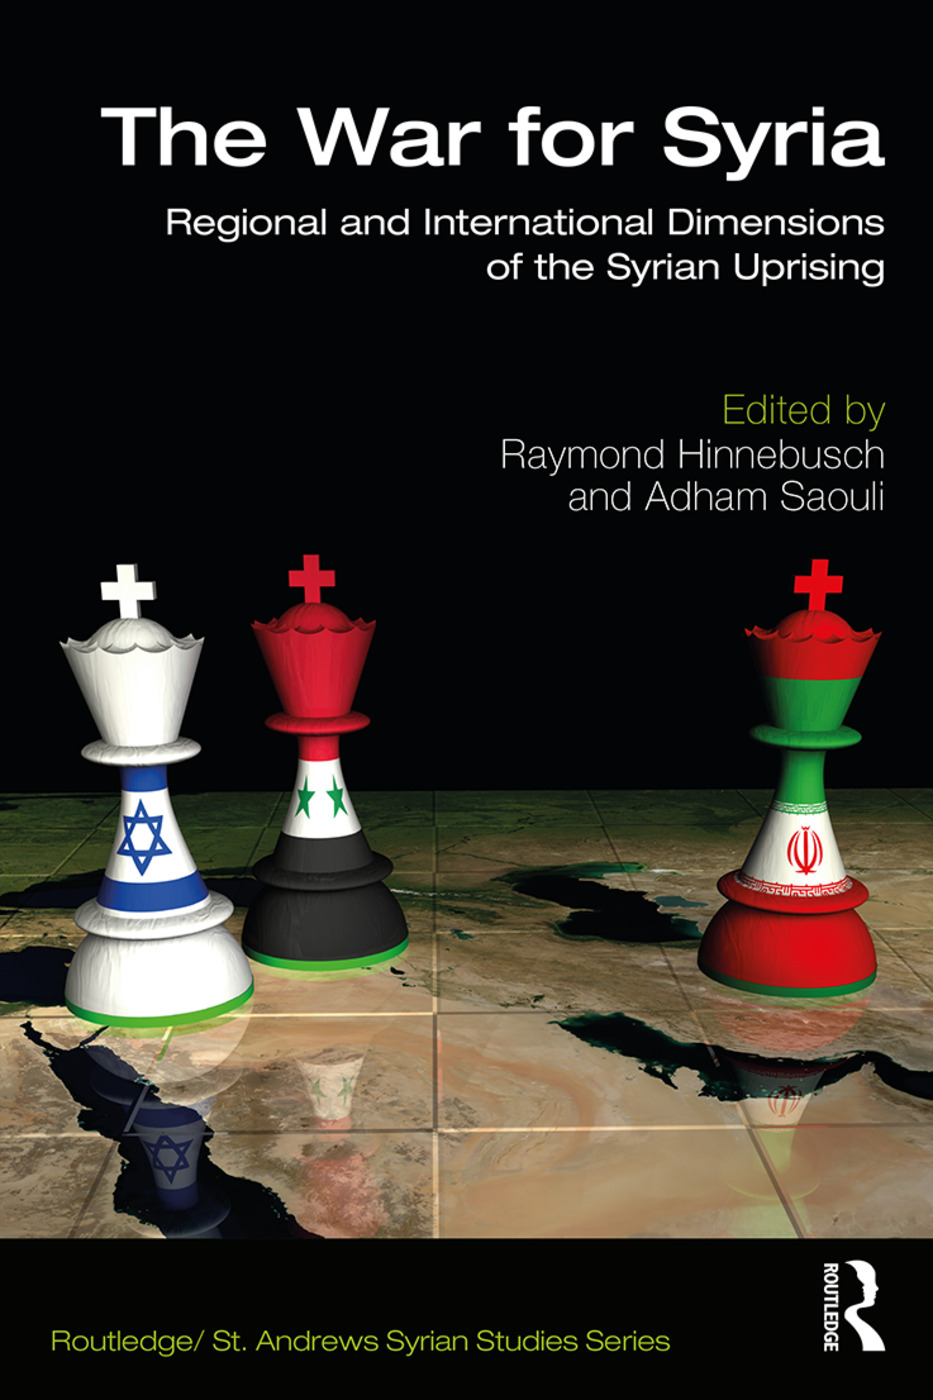 The War for Syria: Regional and International Dimensions of the Syrian Uprising book cover